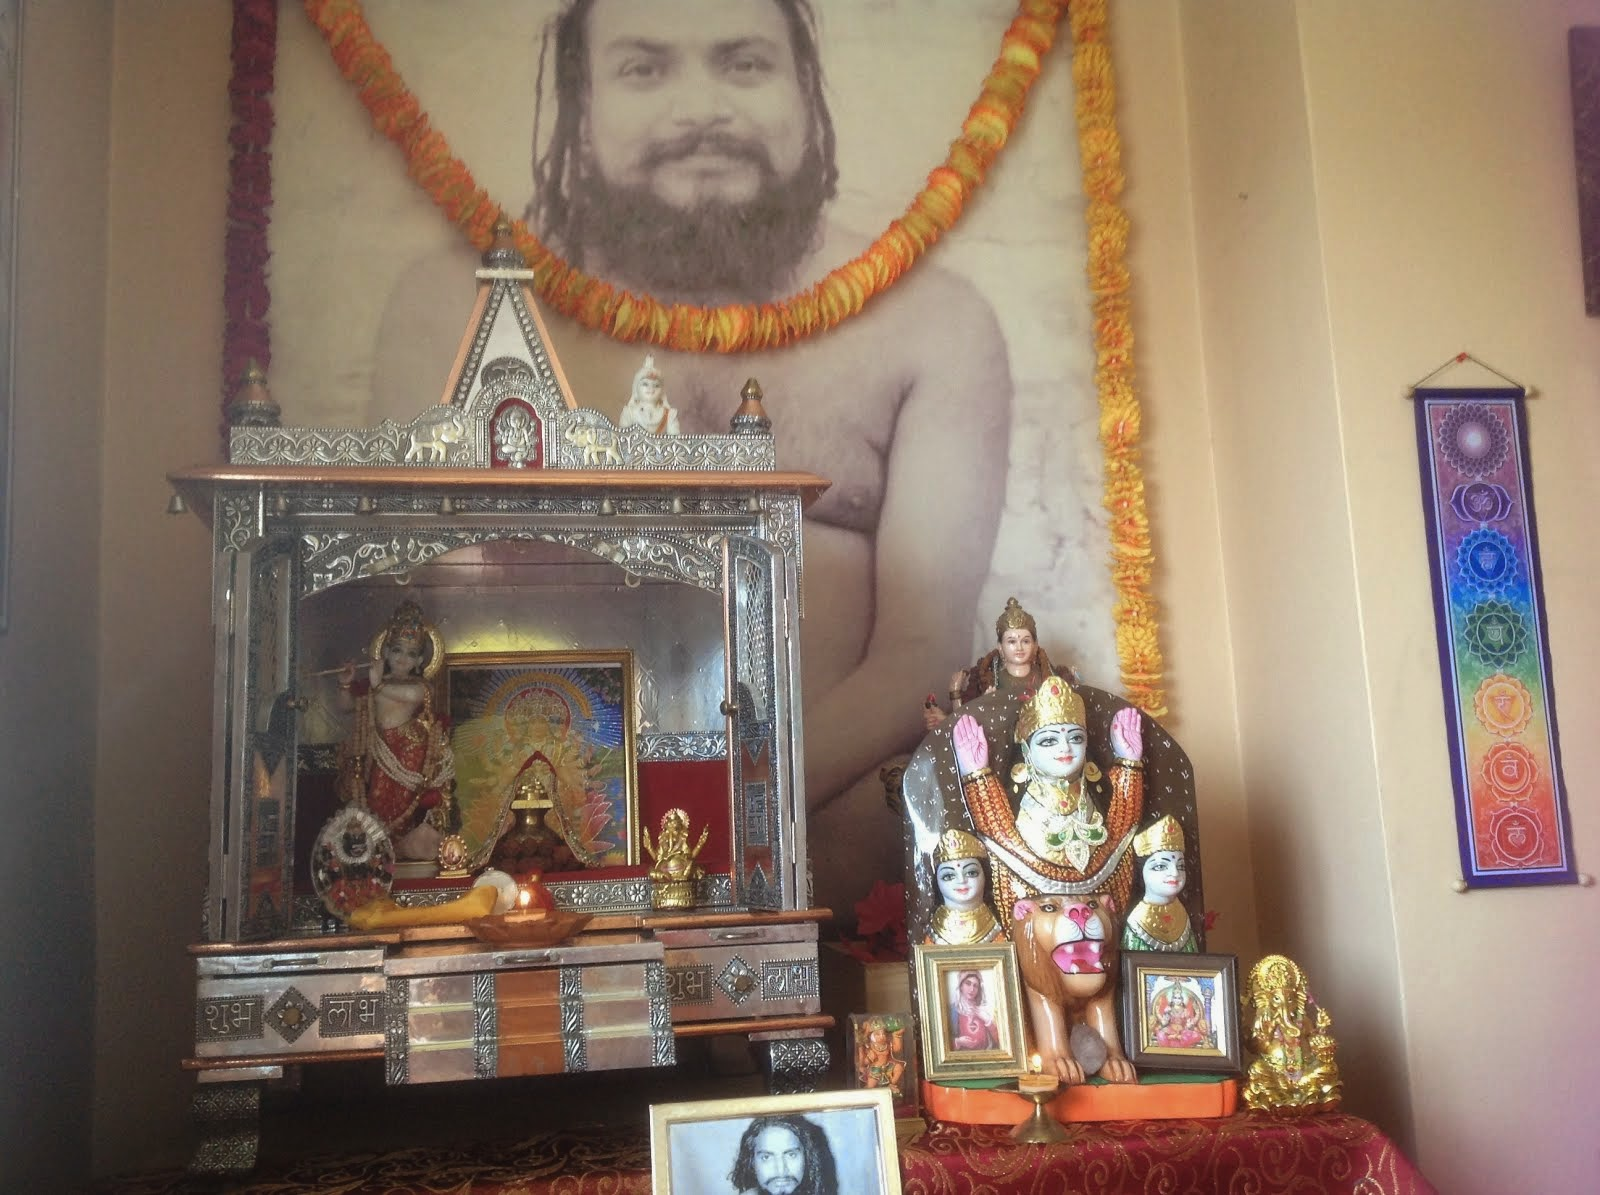 More from the Puja Room